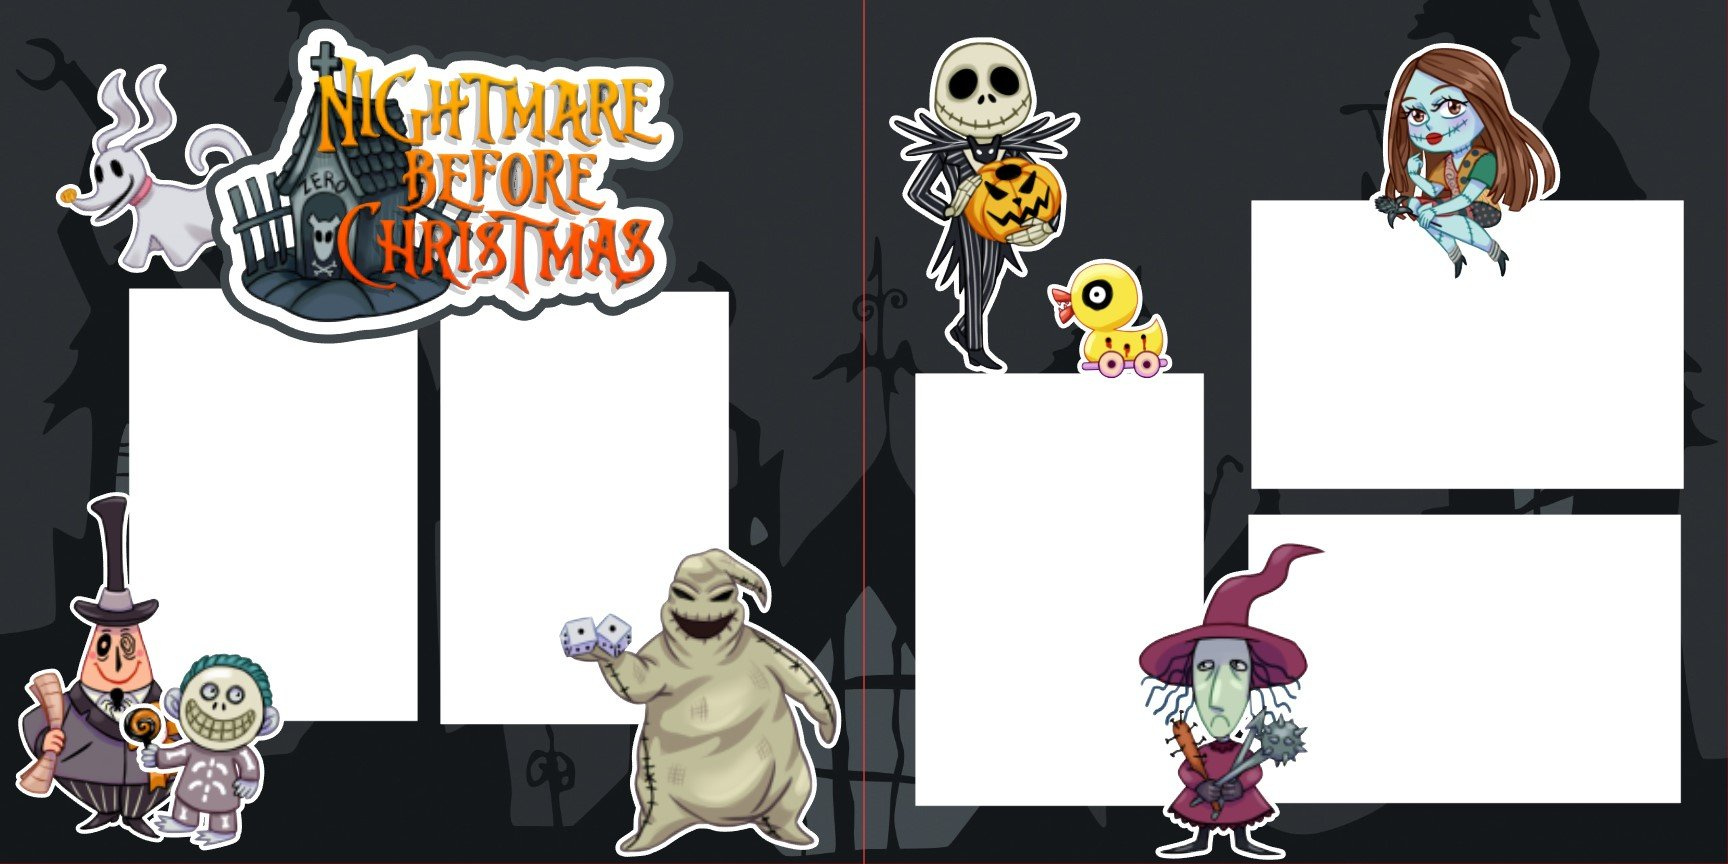 Nightmare Before Christmas v3 - 2 page layout